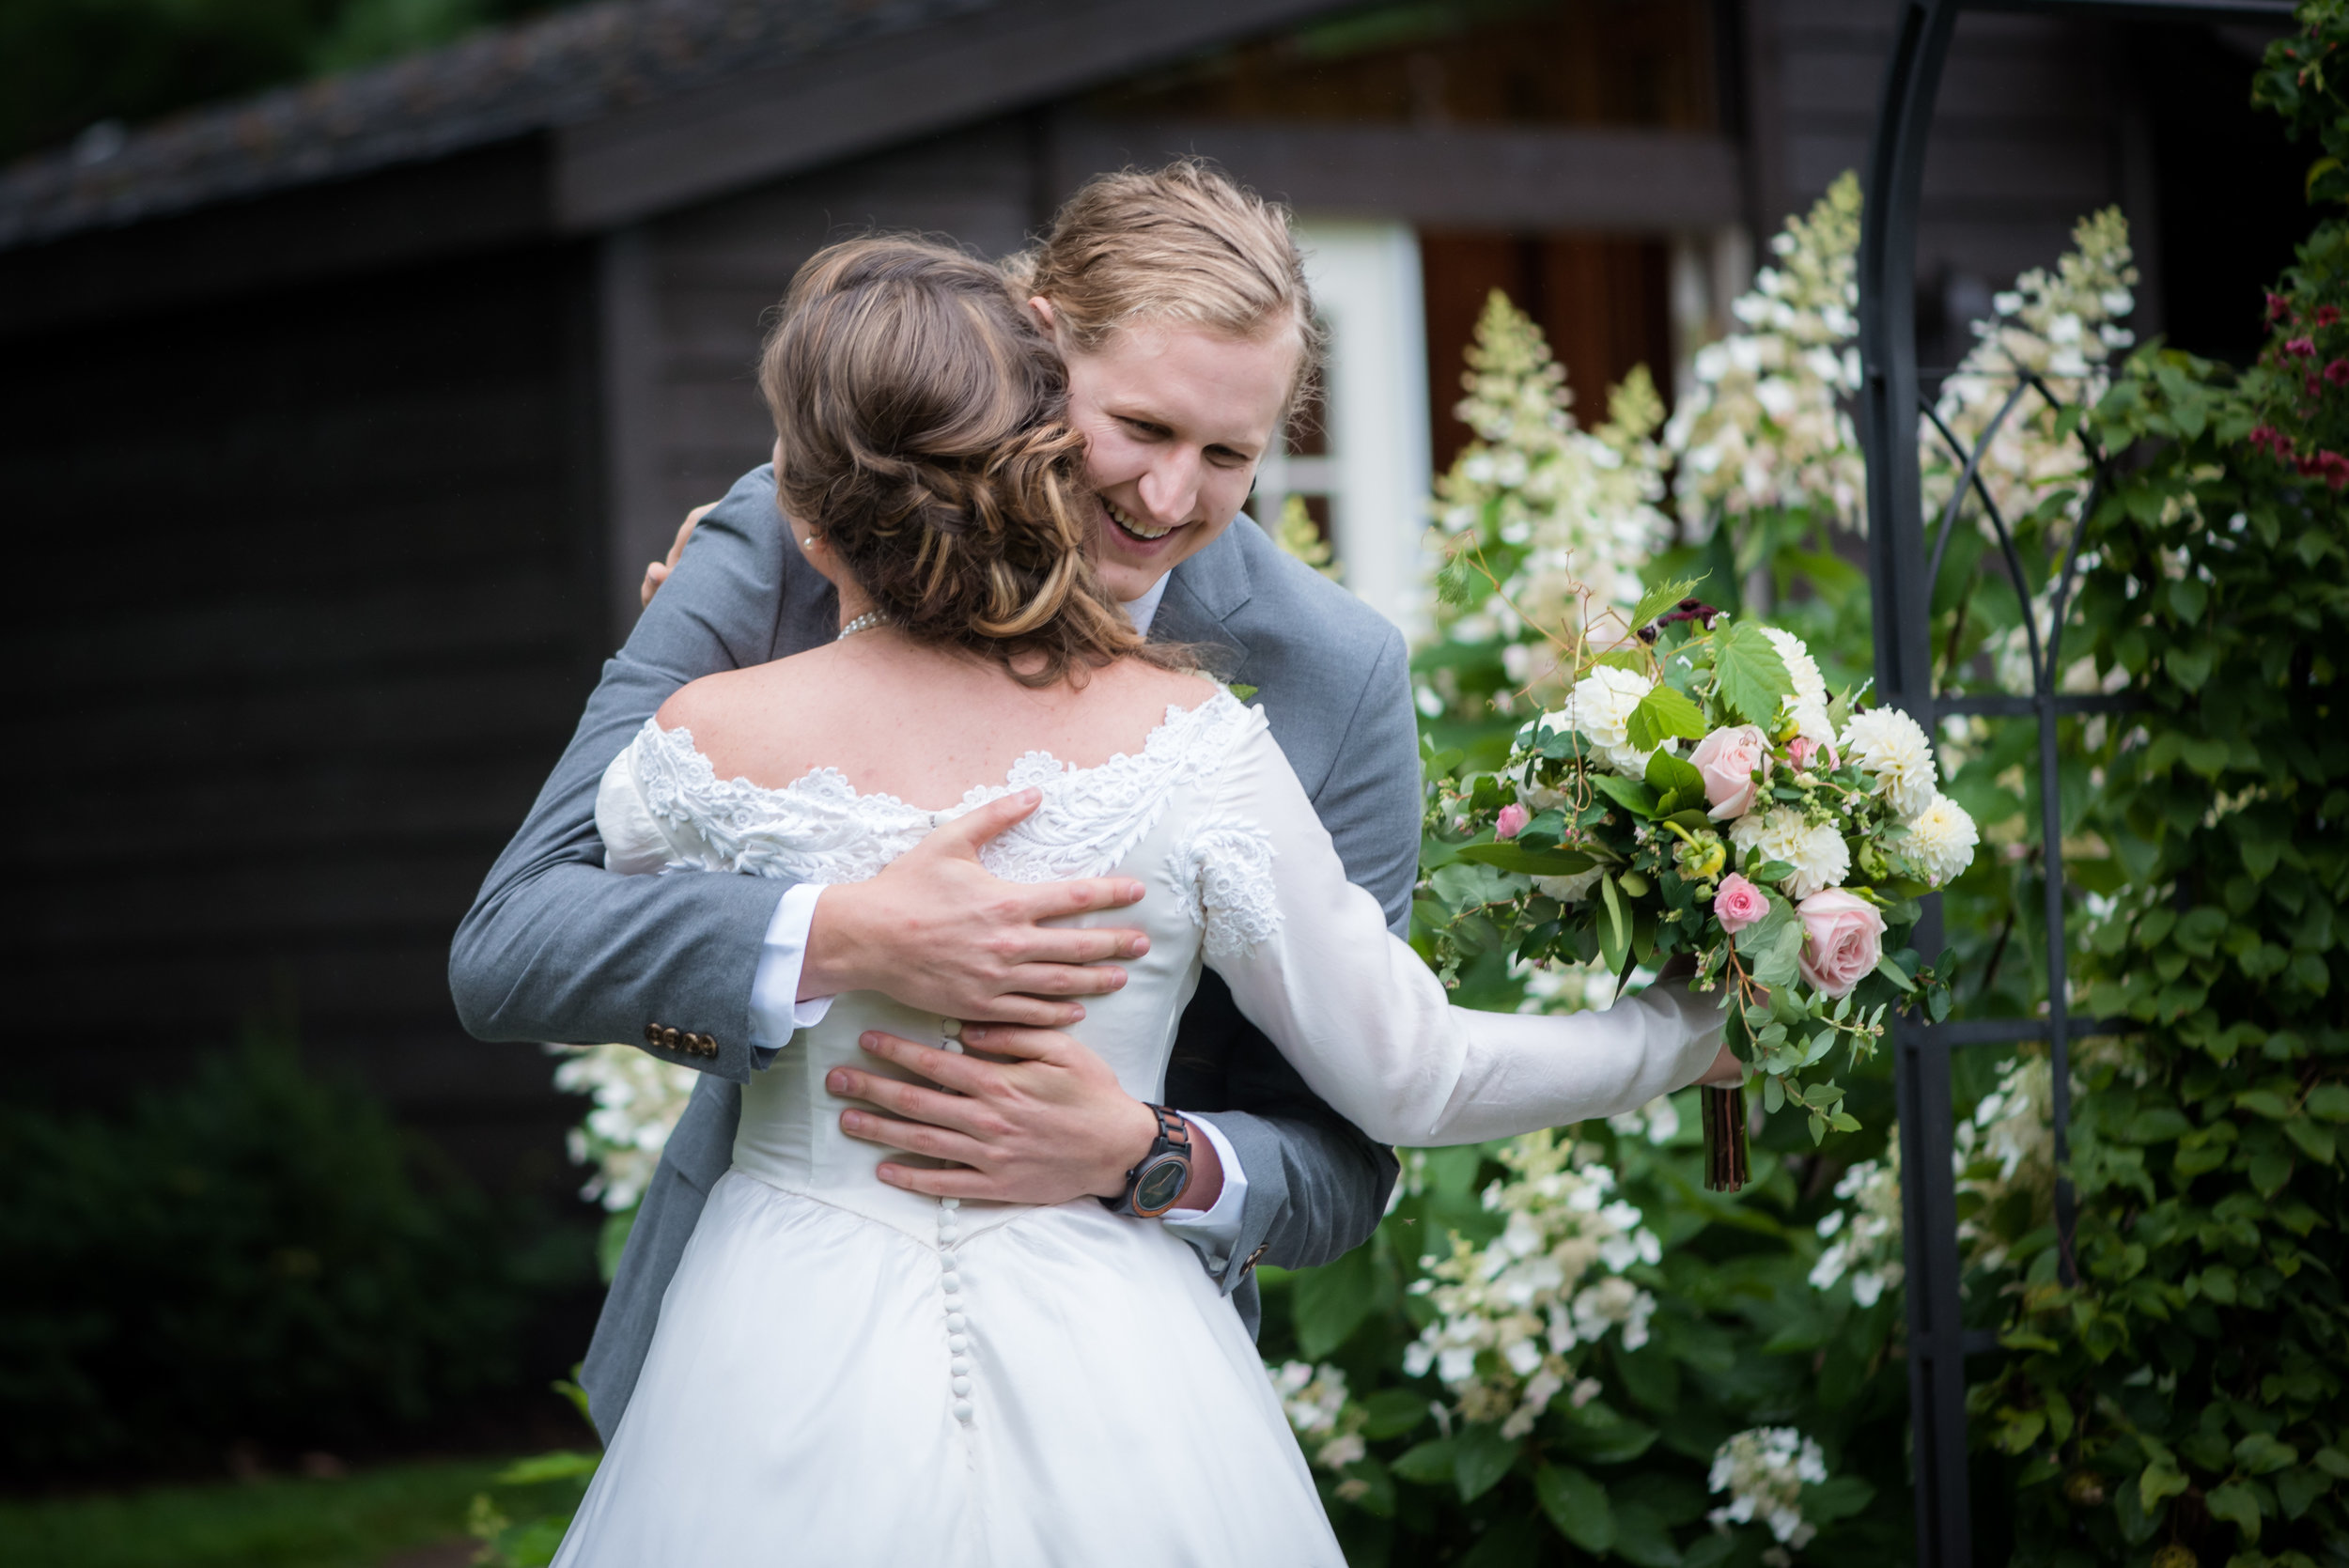 first look // Backyard Wedding in Northfield, MN :: Elliot Malcom Photography :: Megan + Andrew :: Apres Tent Rental :: GastroTruck Catering :: Sixpence Events & Planning .jpg